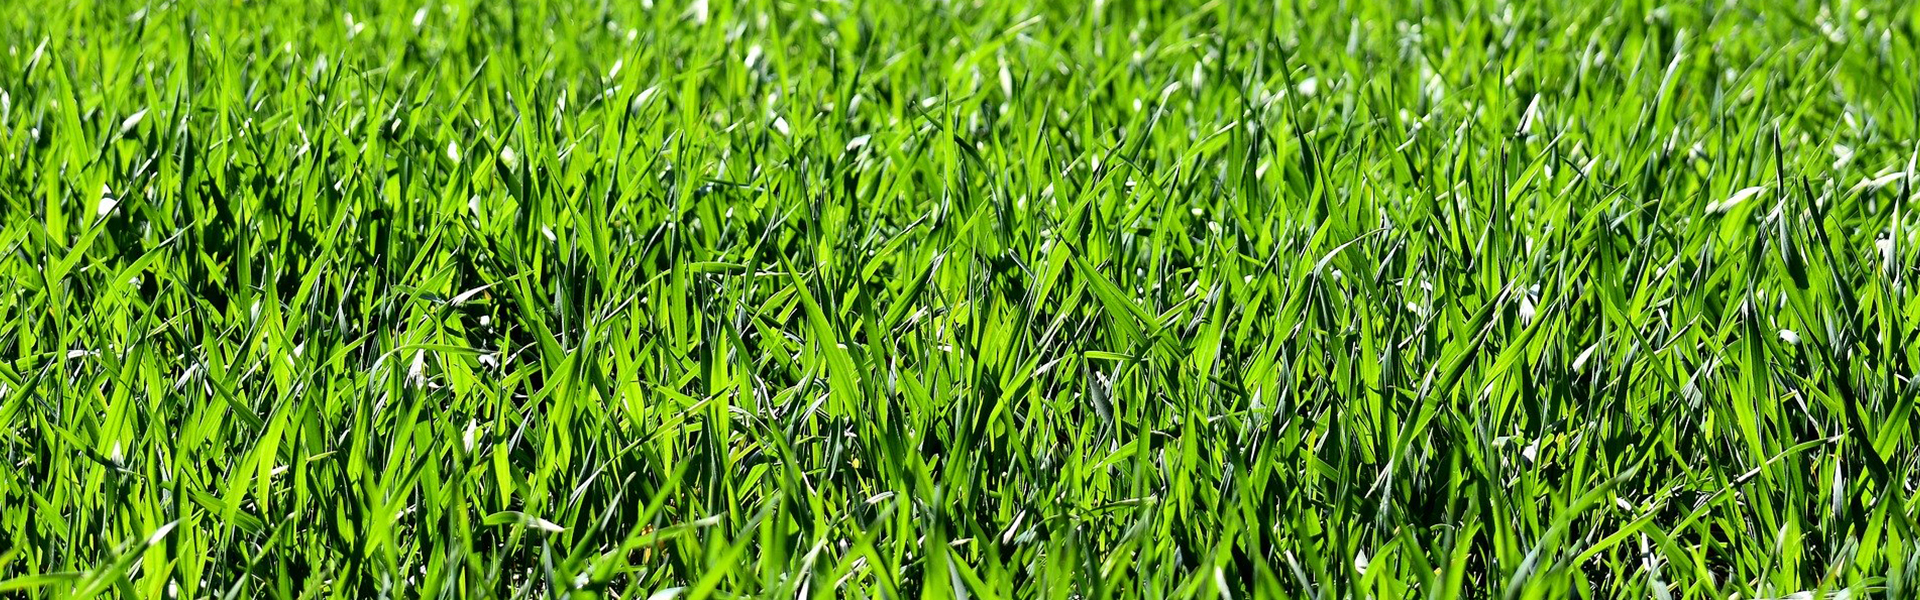 How To Mow The Lawn In Summer All The Tricks Oleomac